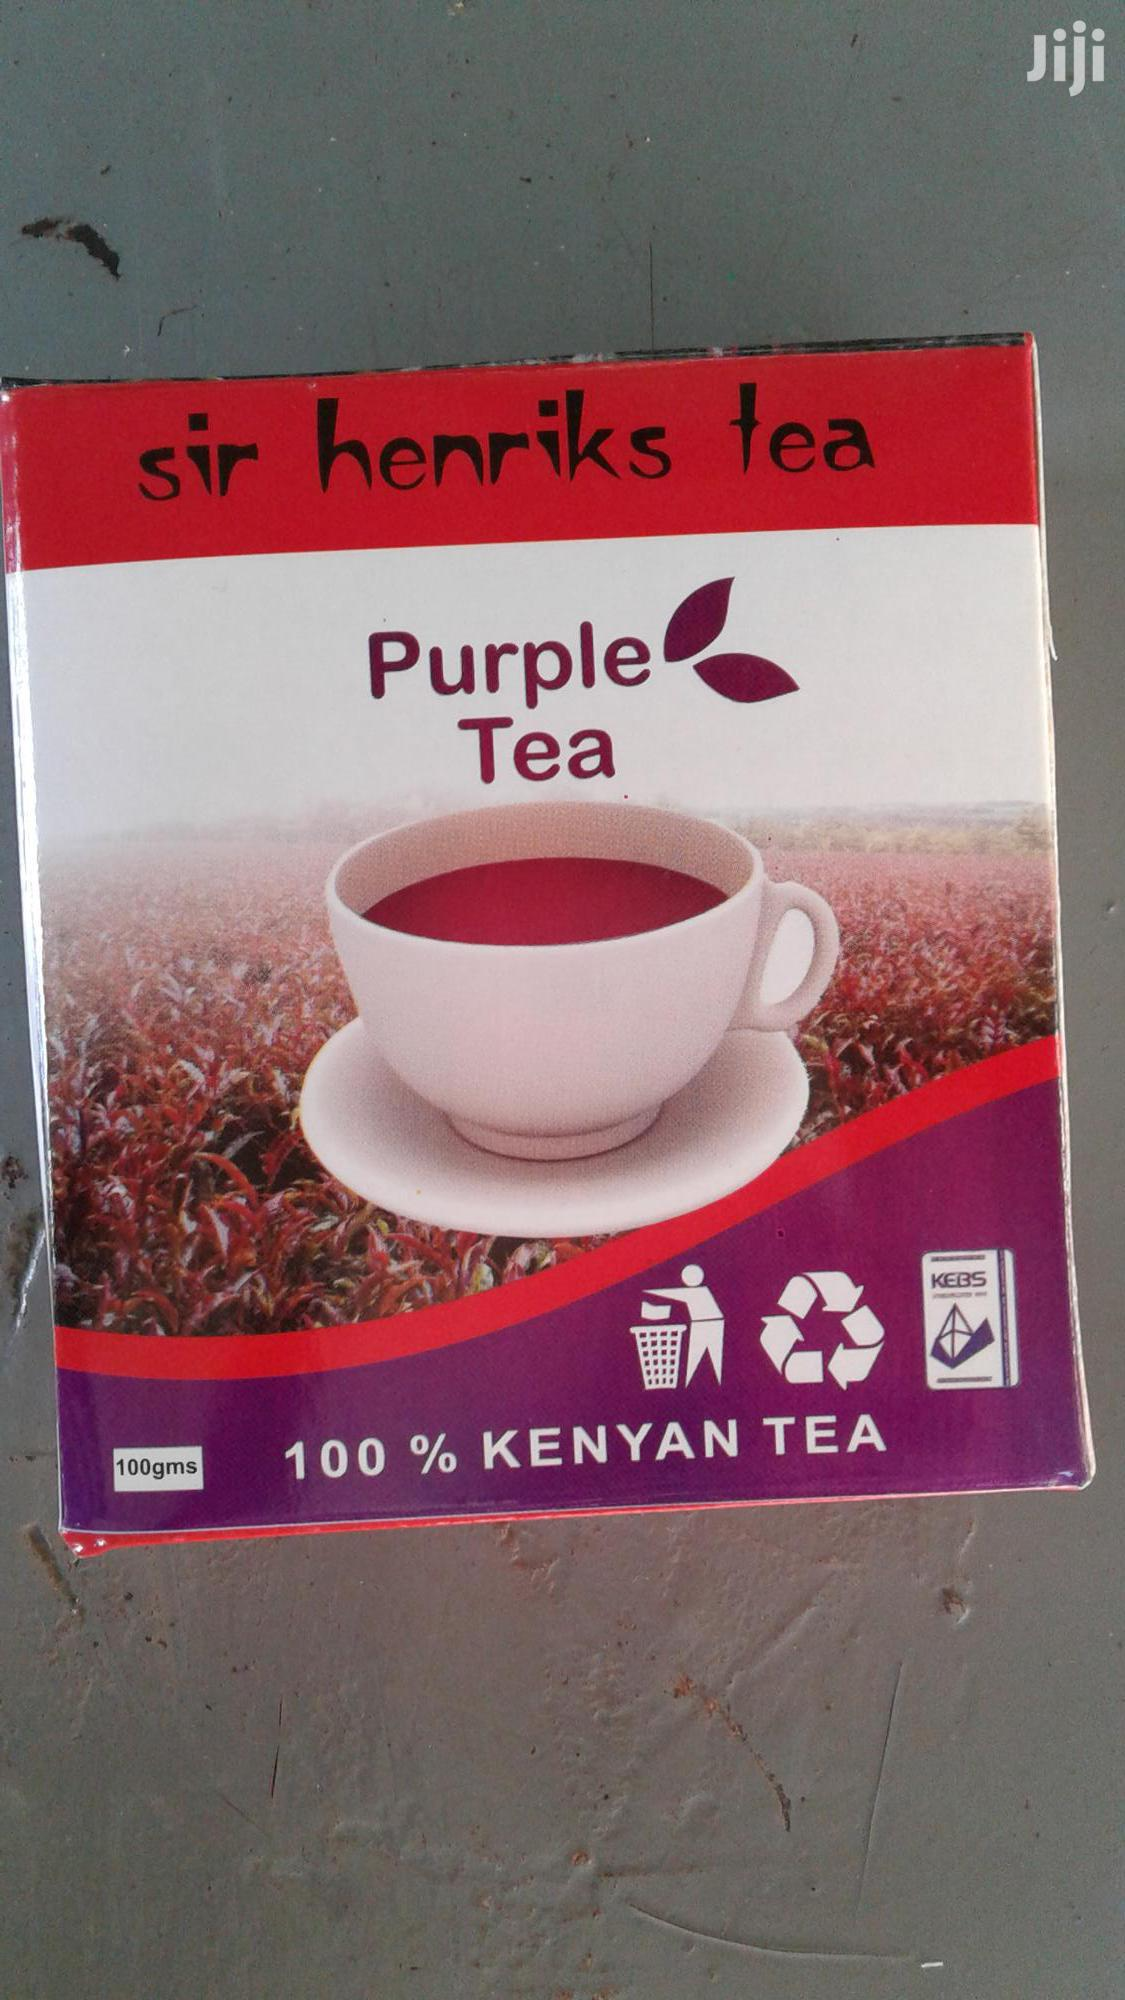 Purple Tea Leaves, Machine Rolled, 100g | Meals & Drinks for sale in Cheptororiet/Seretut, Kericho, Kenya